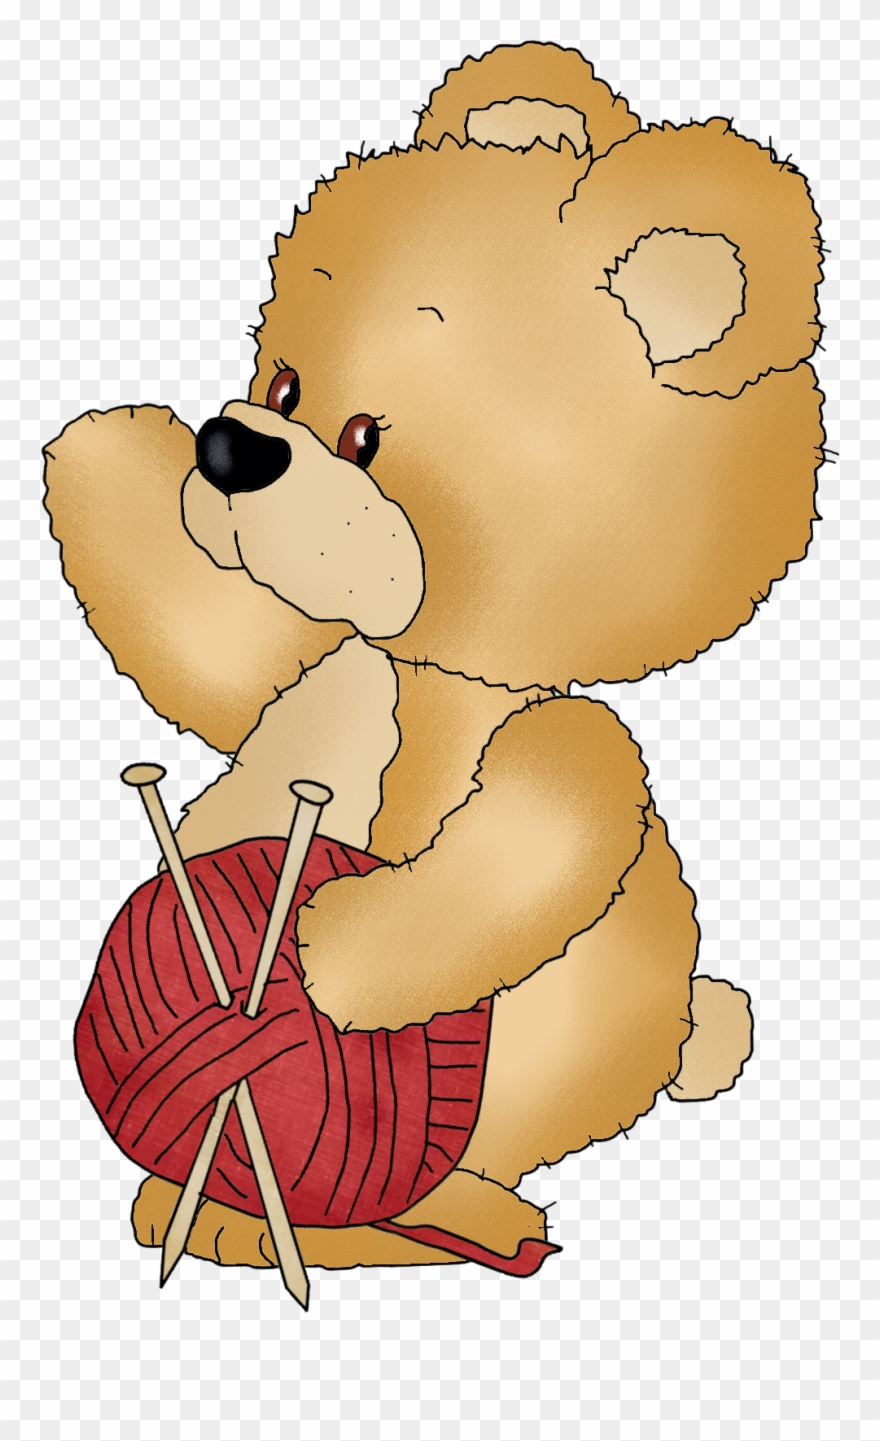 medium resolution of bear with me is a downloadable machine embroidery design clipart